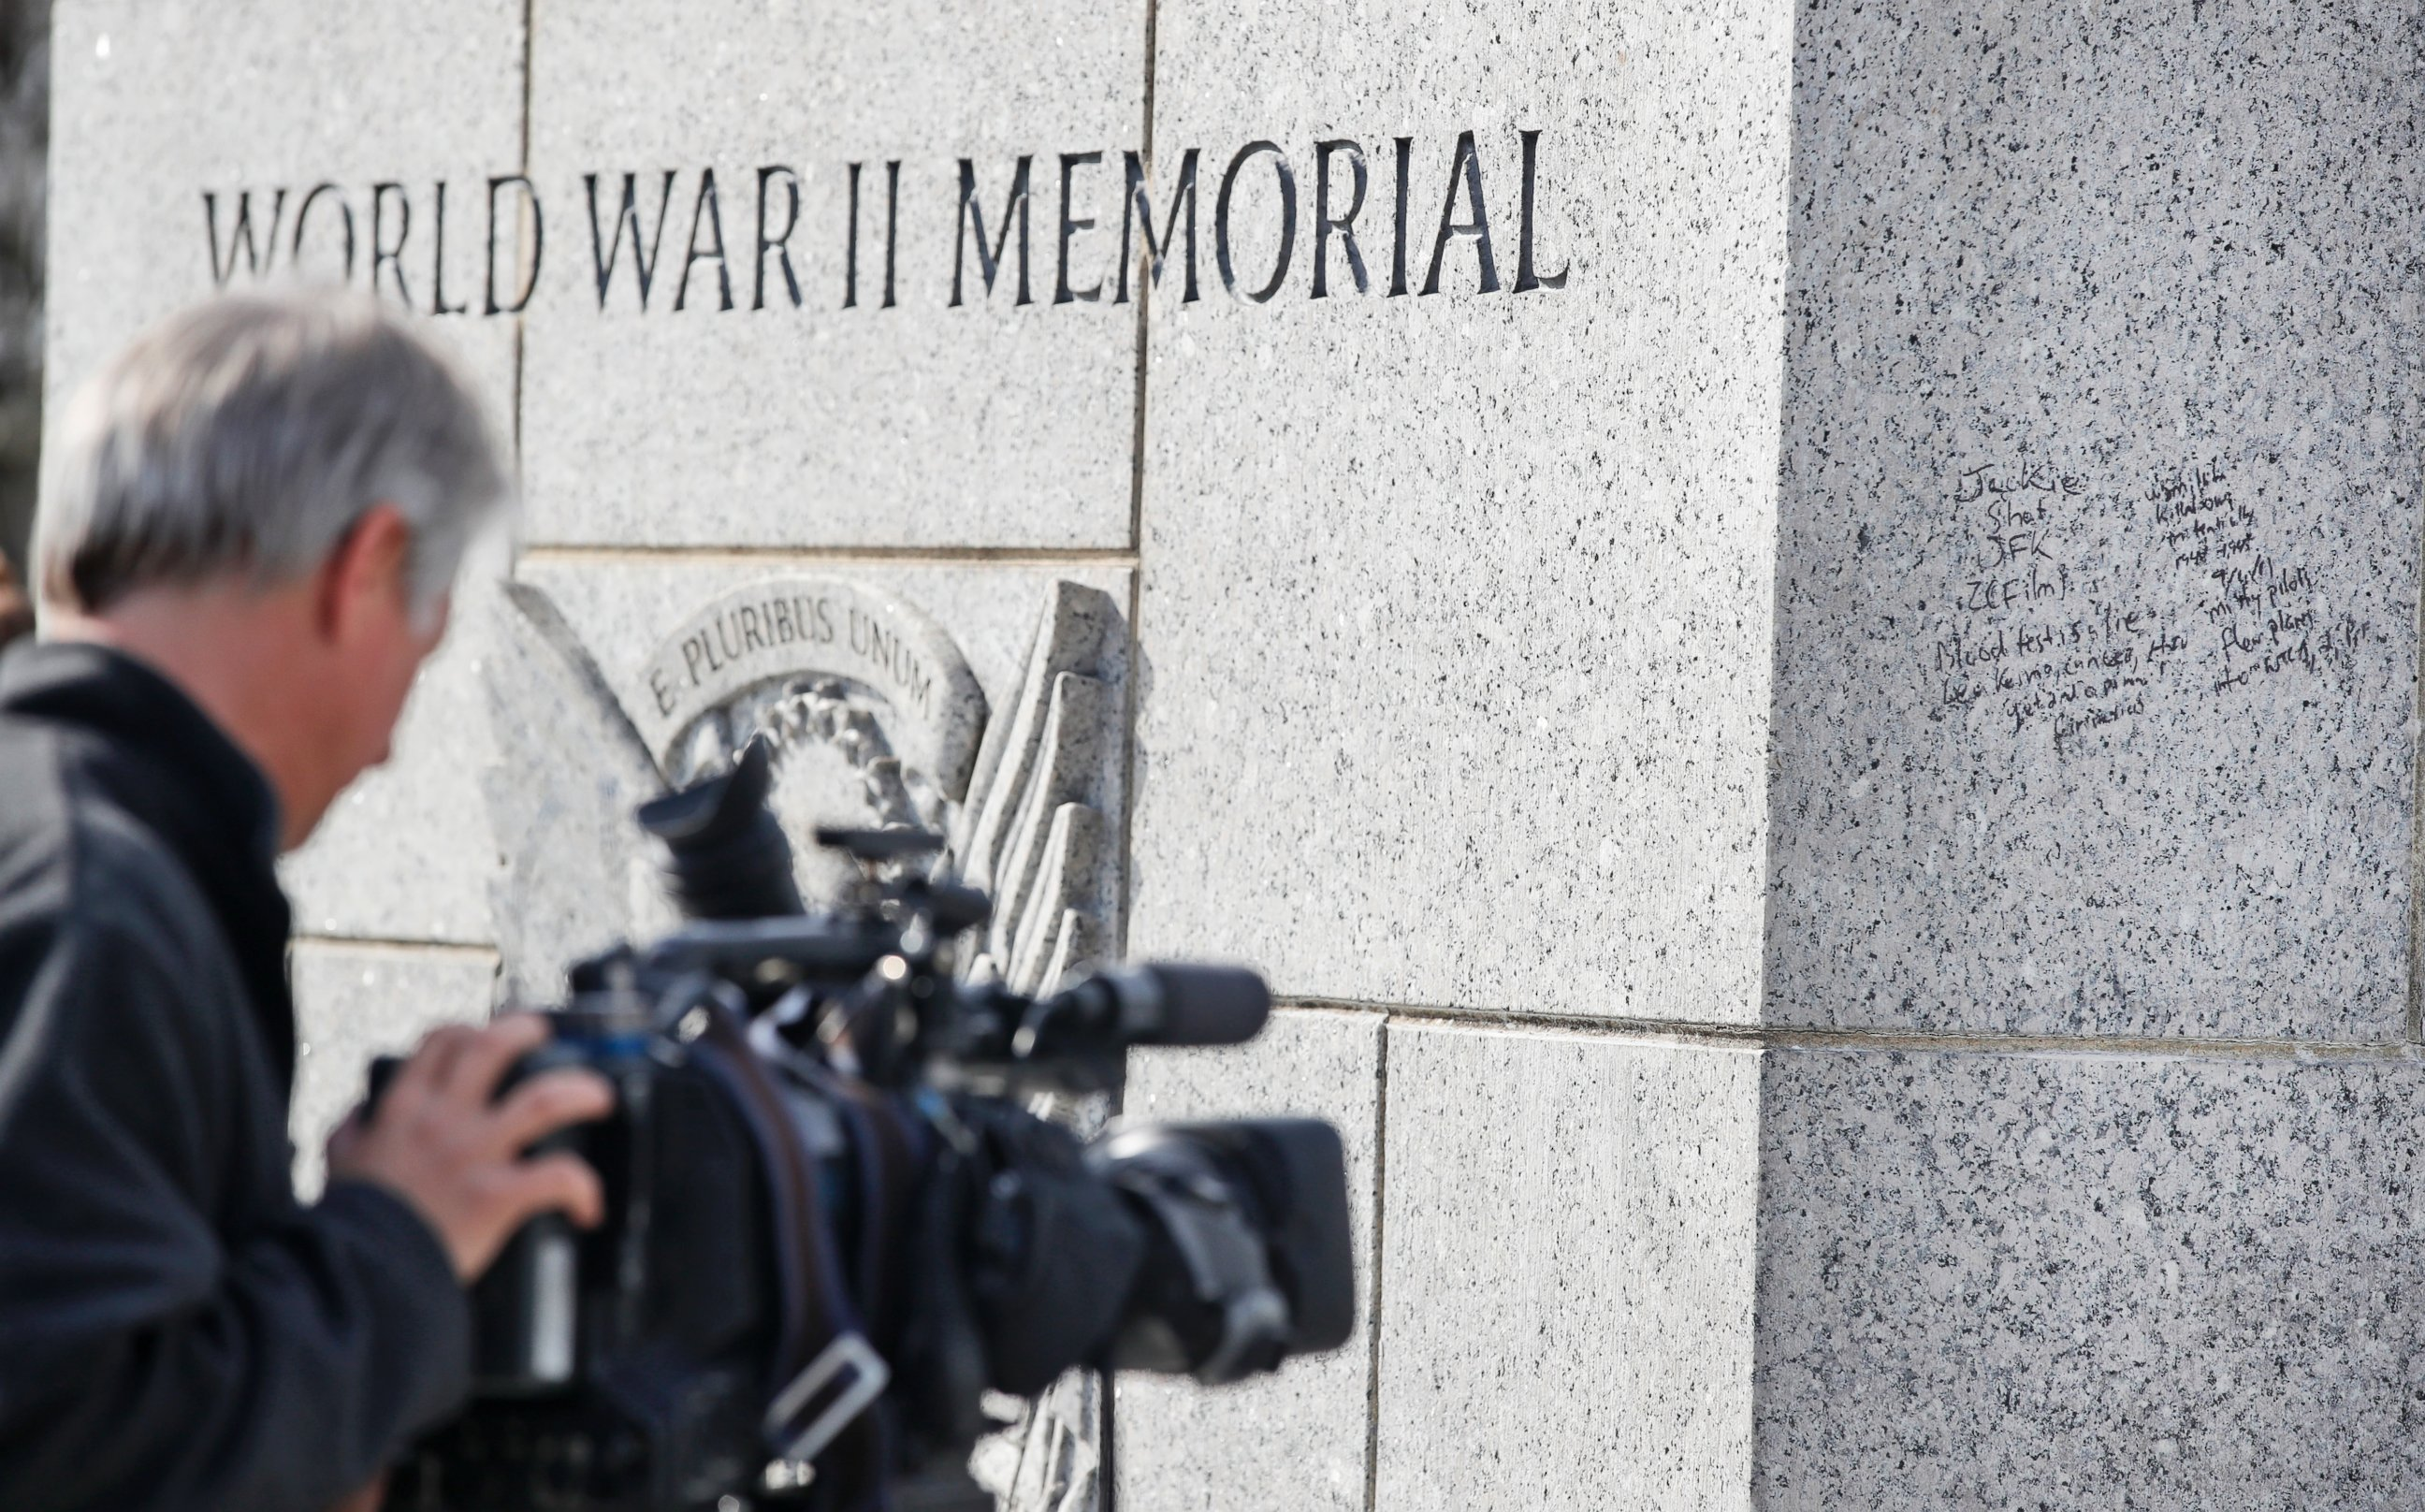 world war ii videos at abc news video archive at abcnews com photo a news videographer tapes the graffiti on the world war ii memorial feb 21 2017 in washington